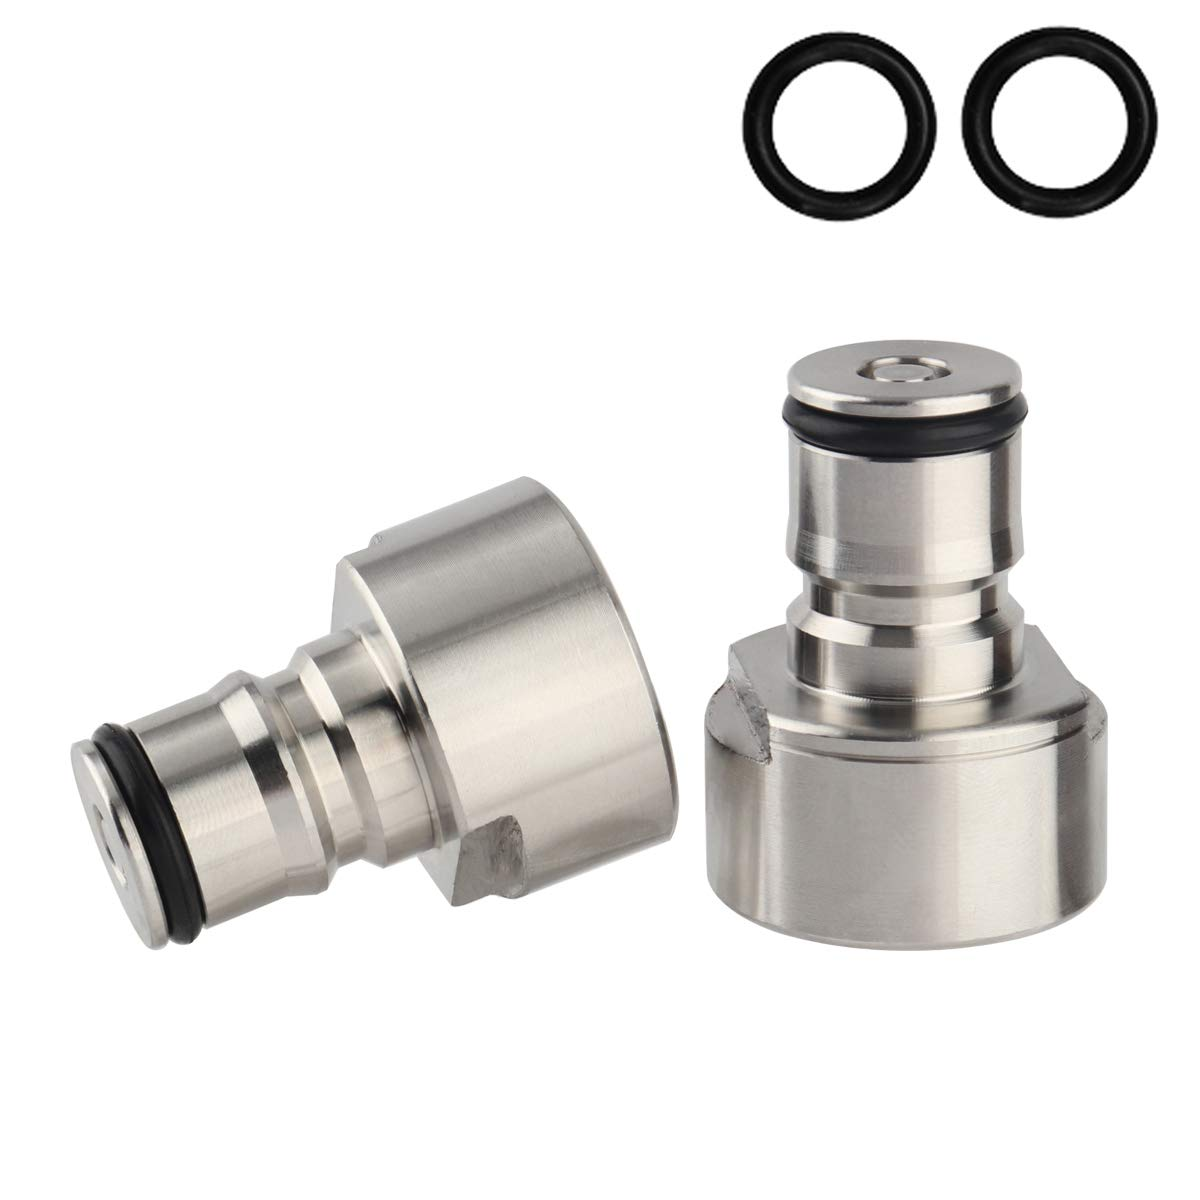 Keg Coupler Adapter Kit, Stainless Steel Ball Lock Posts, 5/8 NPT Thread Sanke Adapter, Quick Disconnect Conversion Kit For Homebrewing (silver)